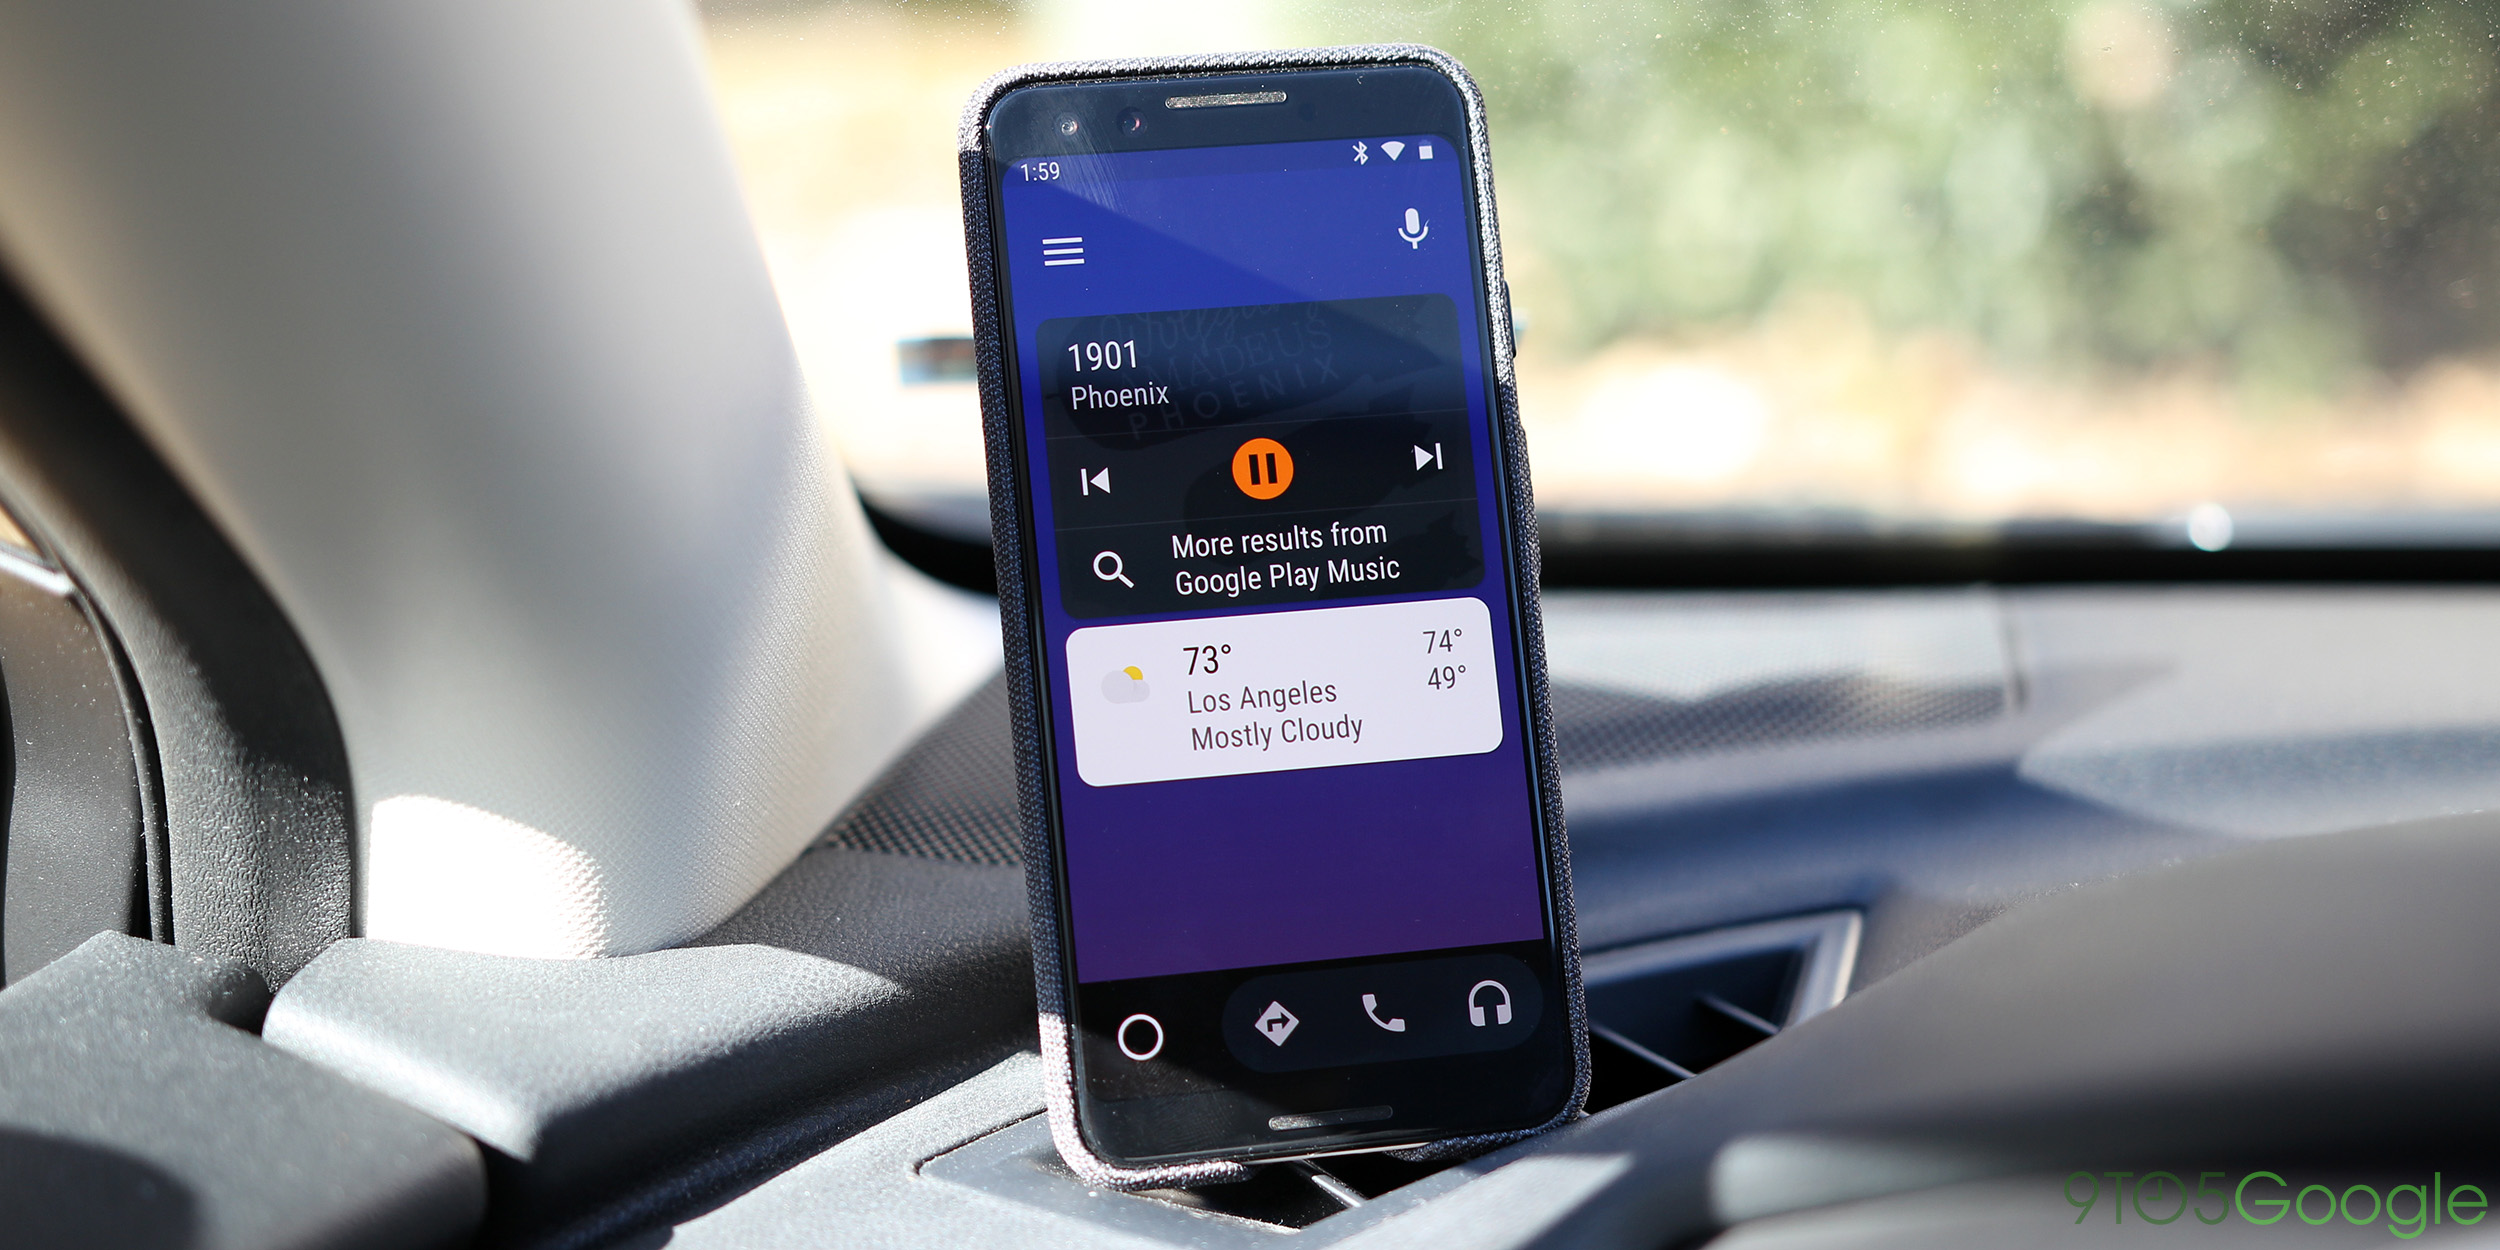 Android Auto 3 8 improves media browsing, supports MMS, RCS